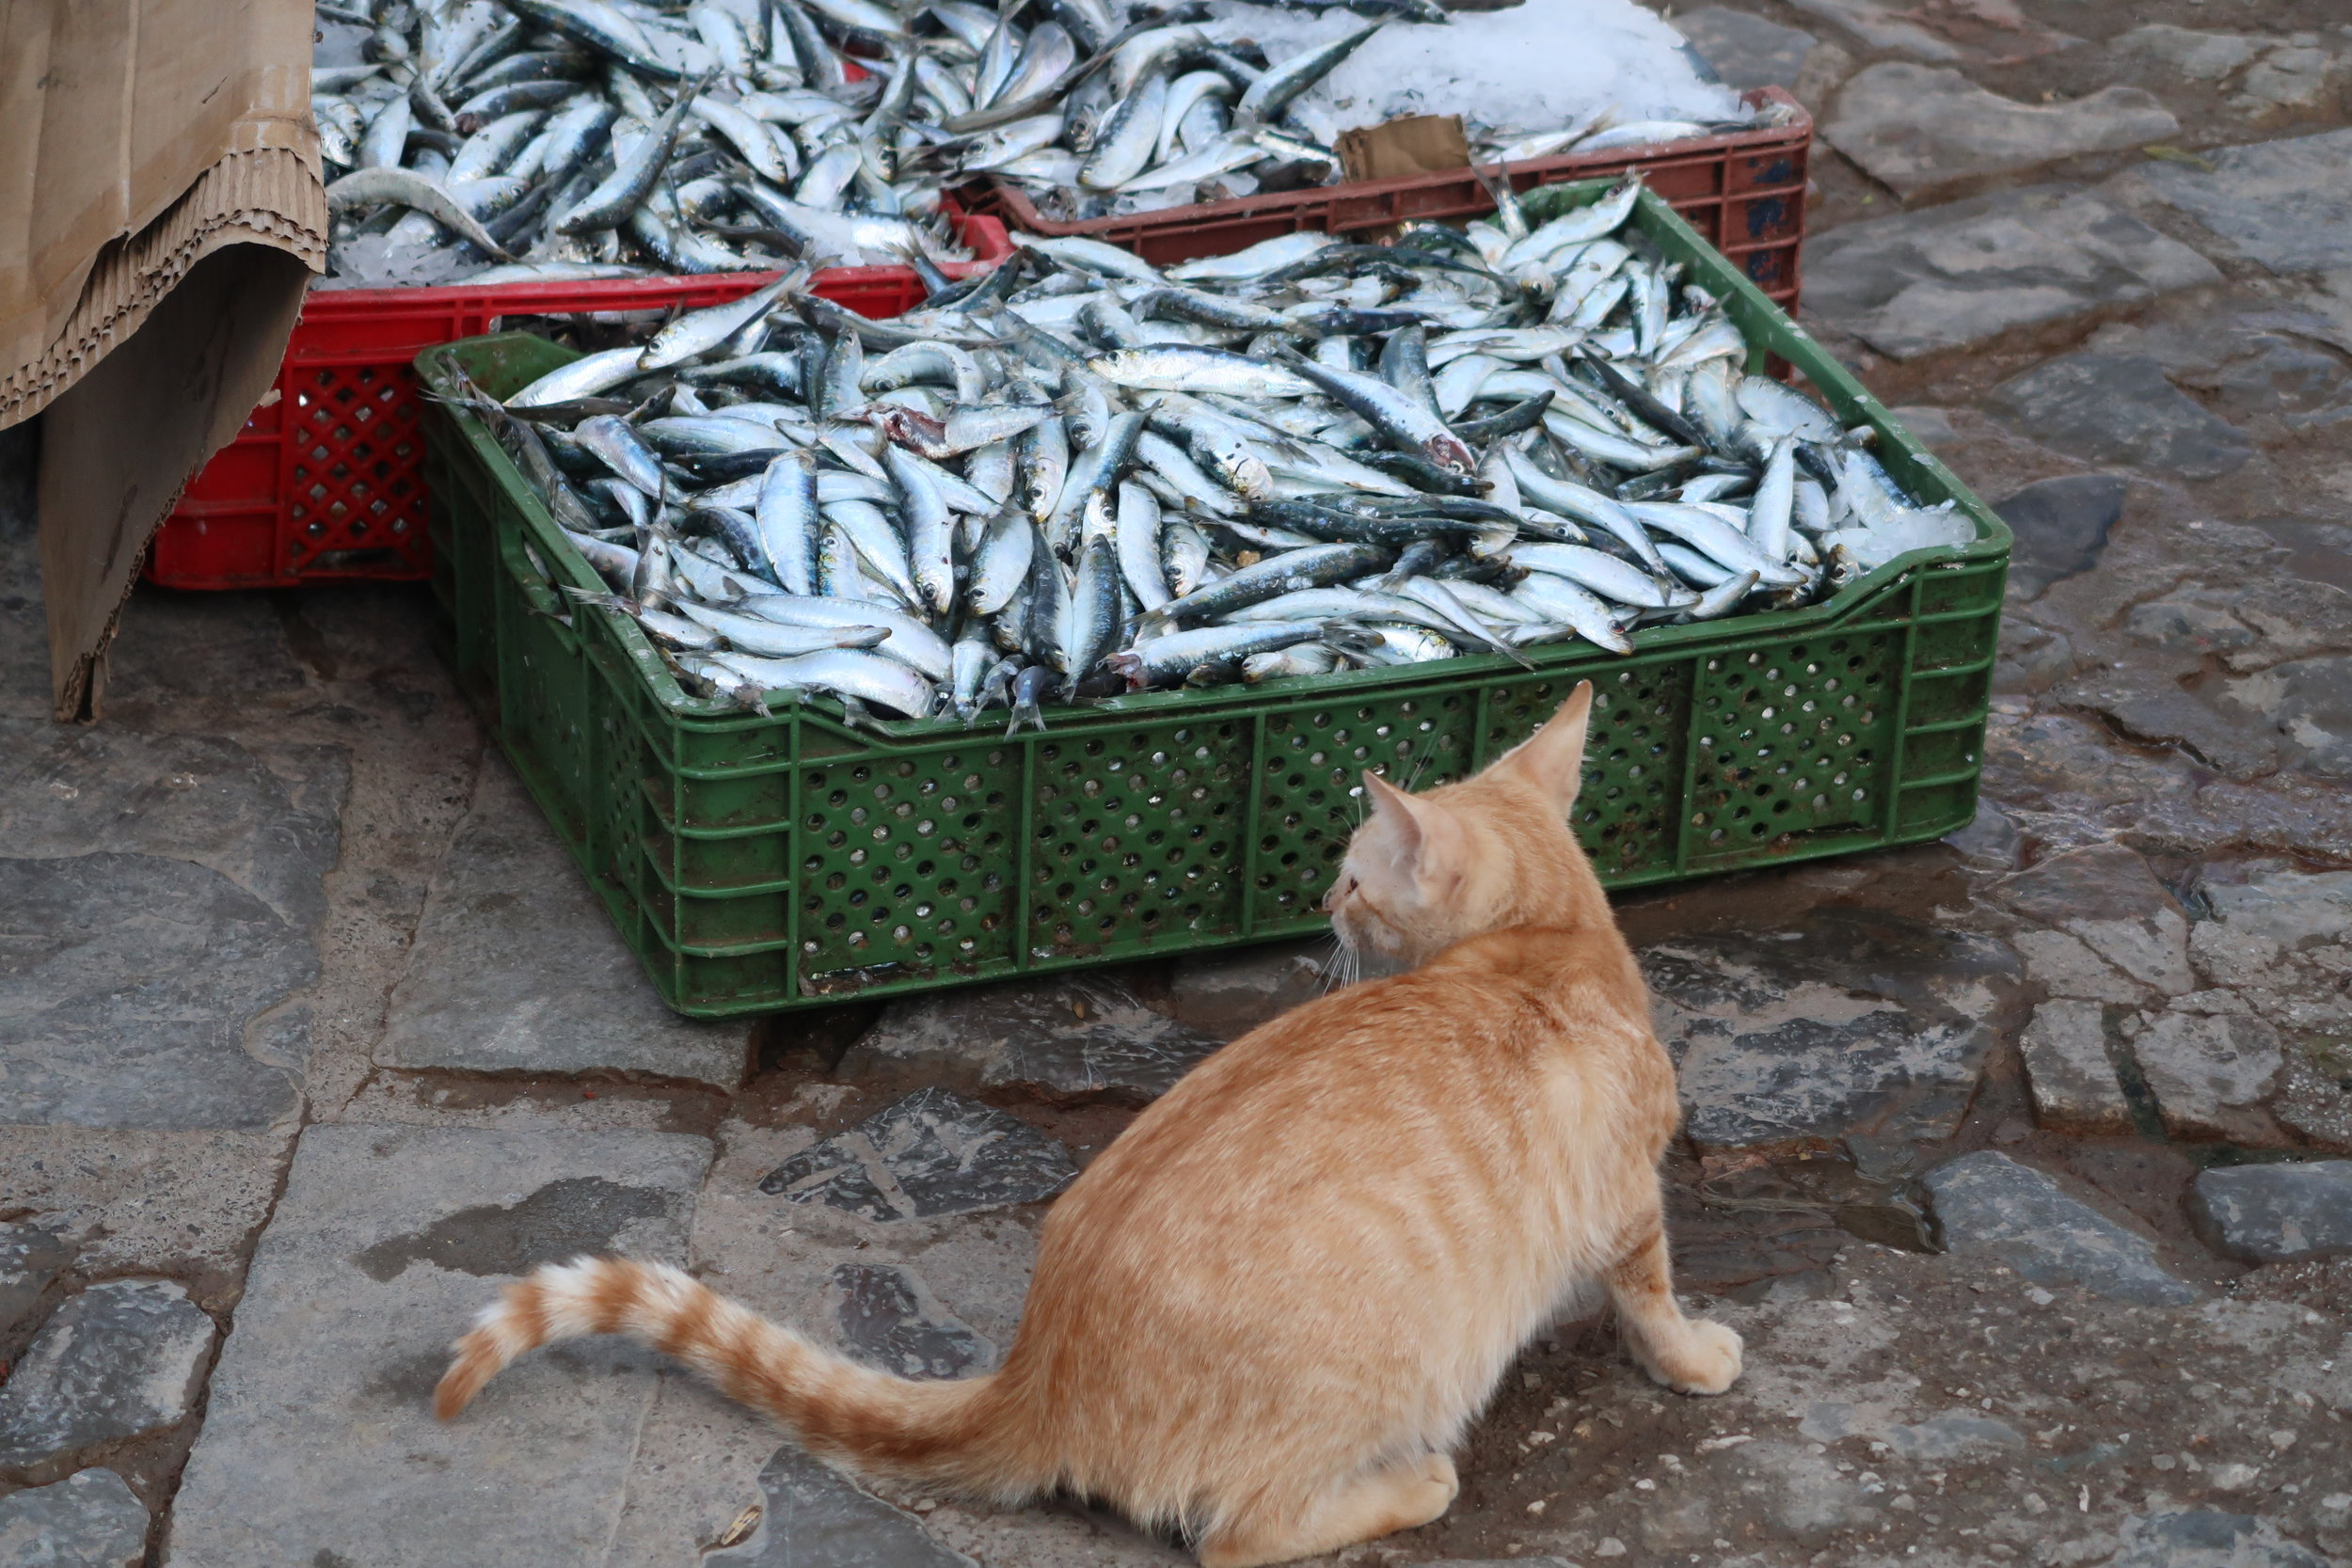 Cat trying to snatch a bite out of the fresh catch